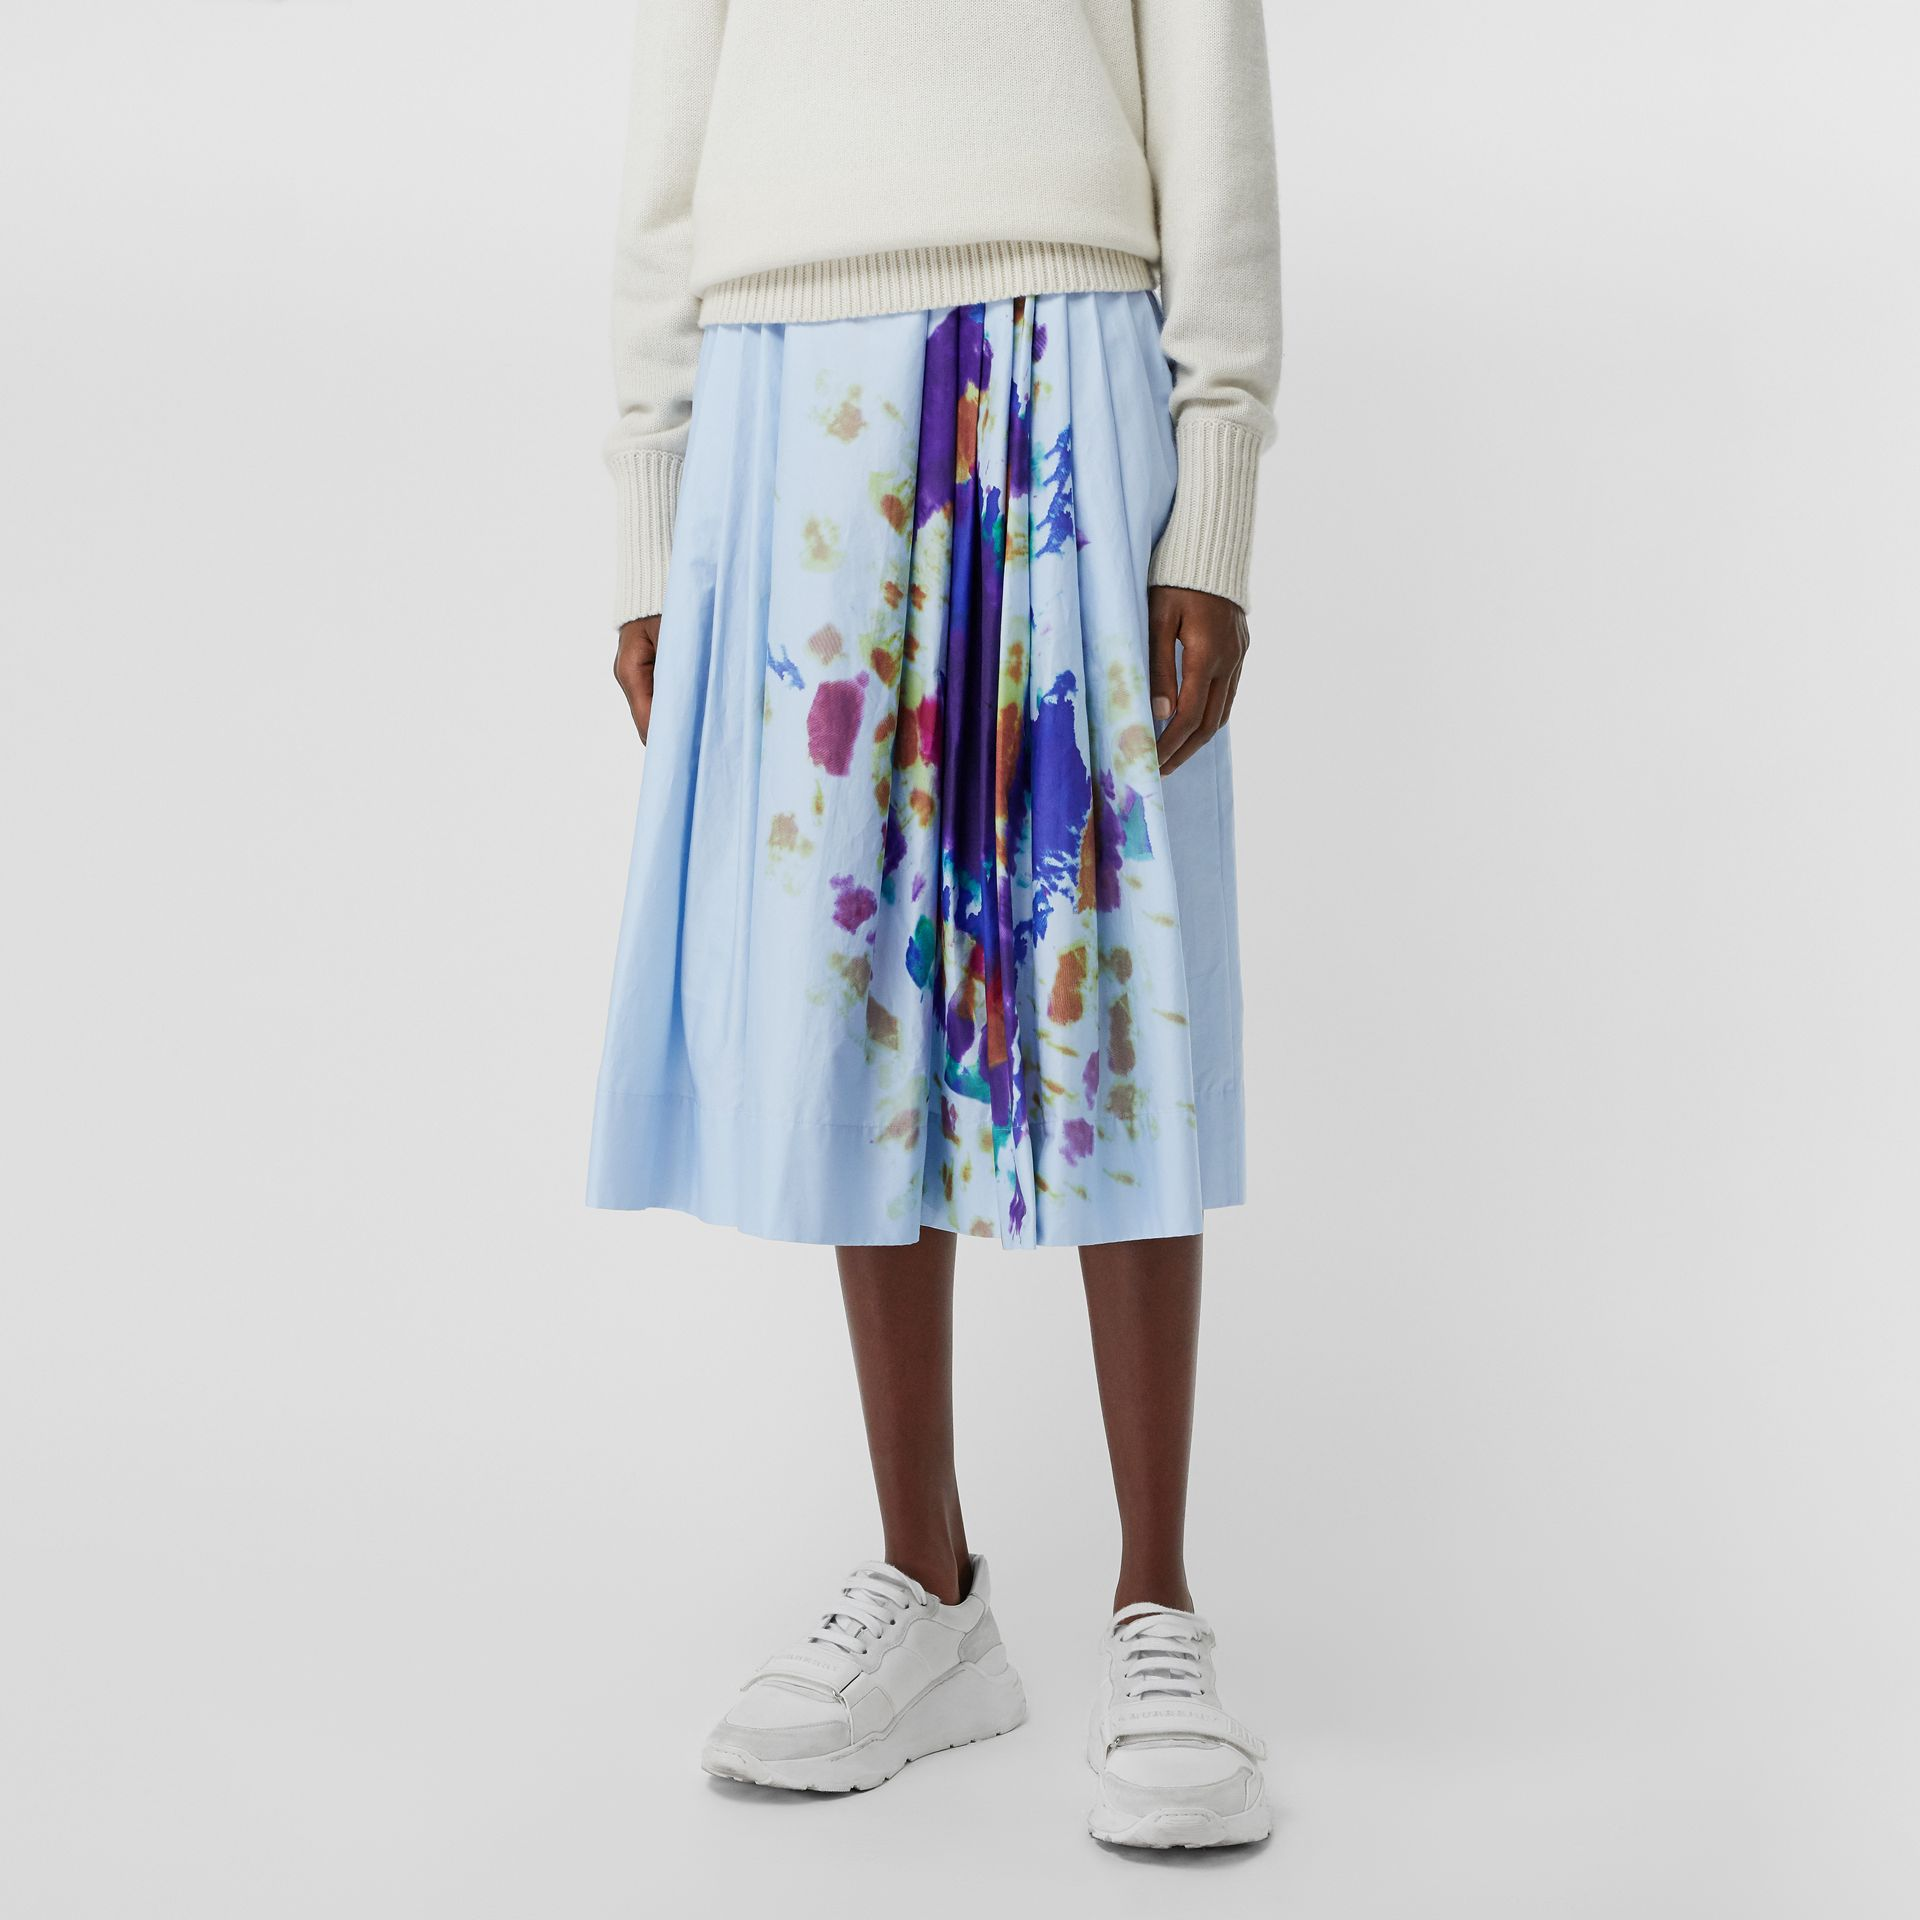 Rainbow Print Cotton Sateen Skirt in Light Blue - Women | Burberry - gallery image 4